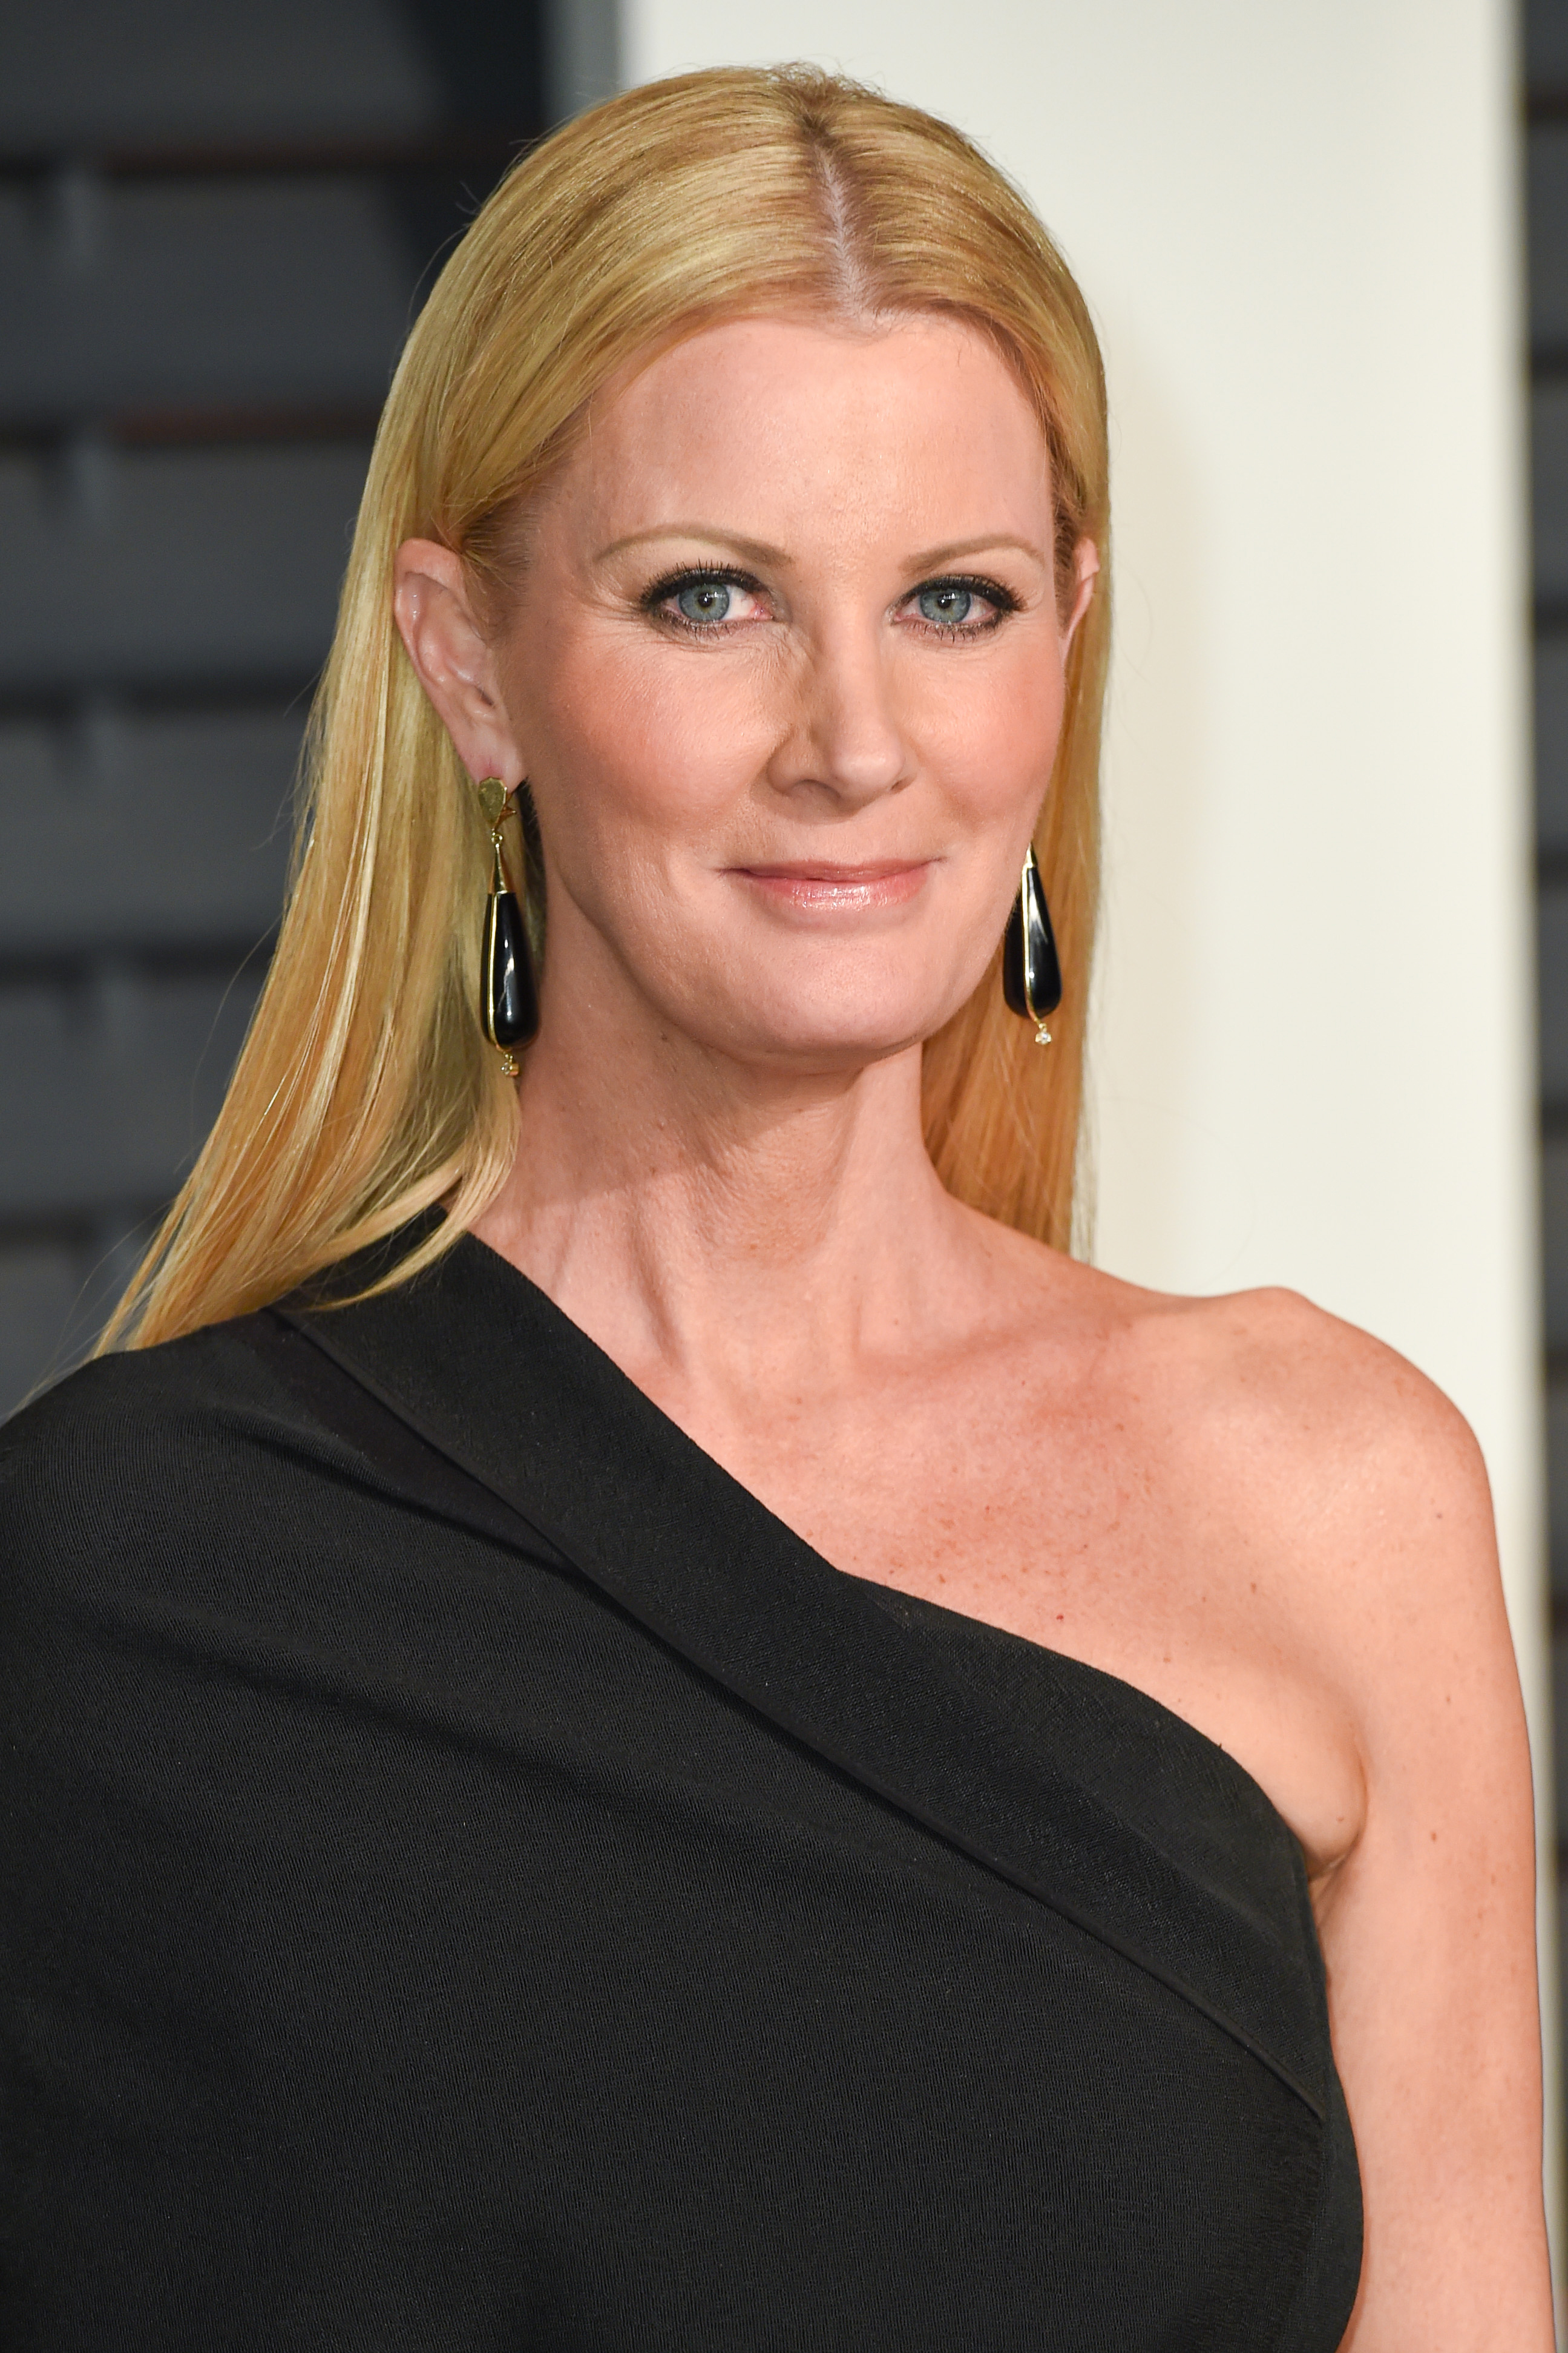 Sandra Lee arrives at the 2015 Vanity Fair Oscar after party on Feb. 22, 2015 at The Wallis Annenberg Center for the Performing Arts in Beverly Hills, Calif.